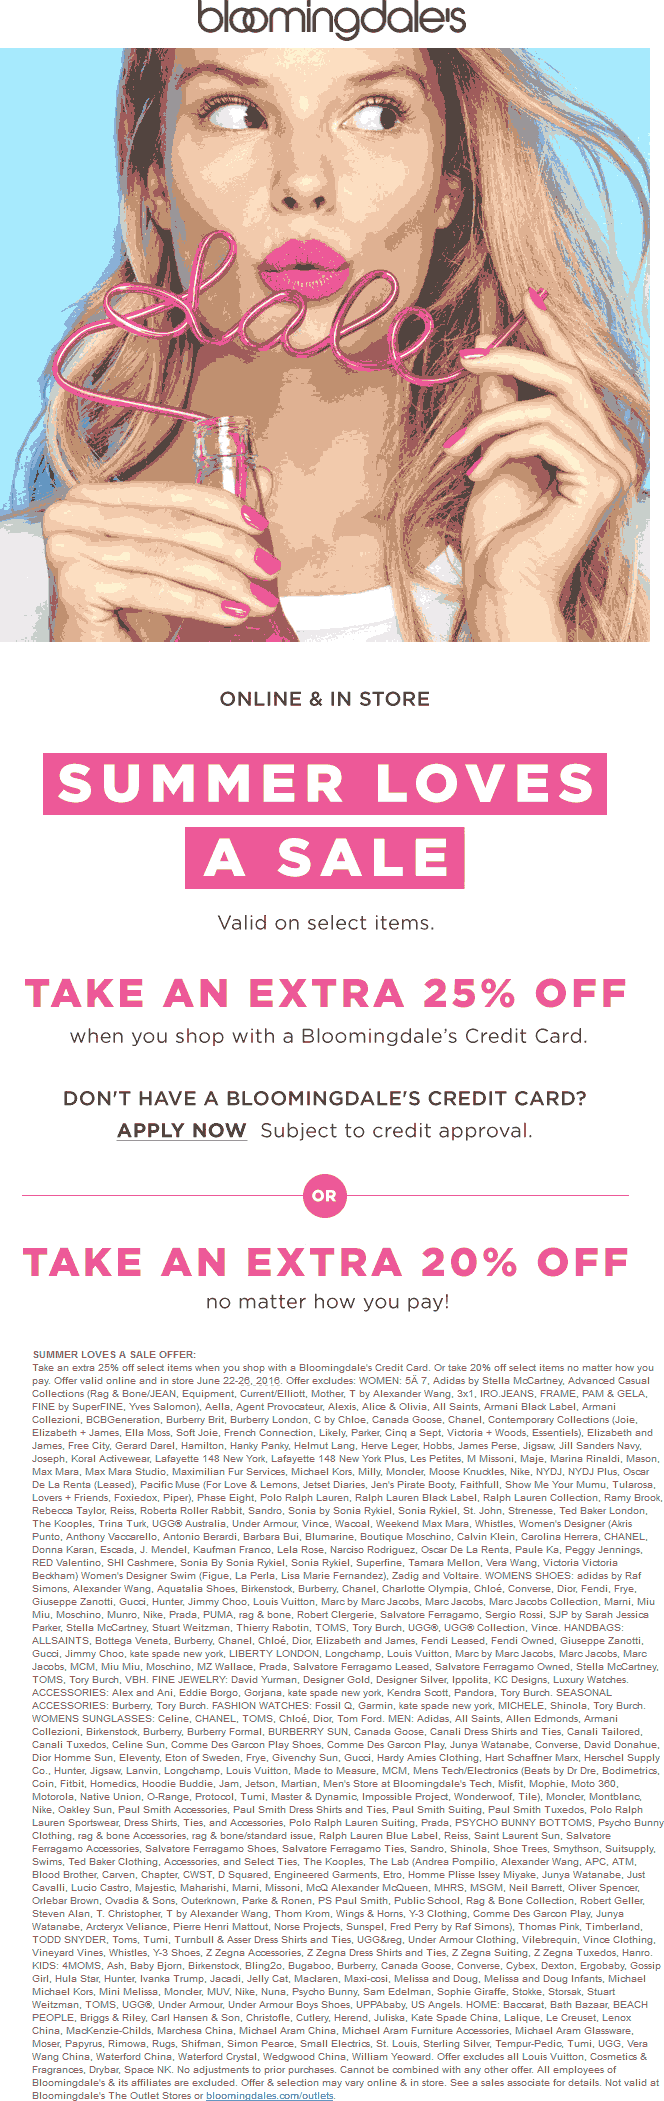 Bloomingdales Coupon June 2017 Extra 20% off at Bloomingdales, ditto online